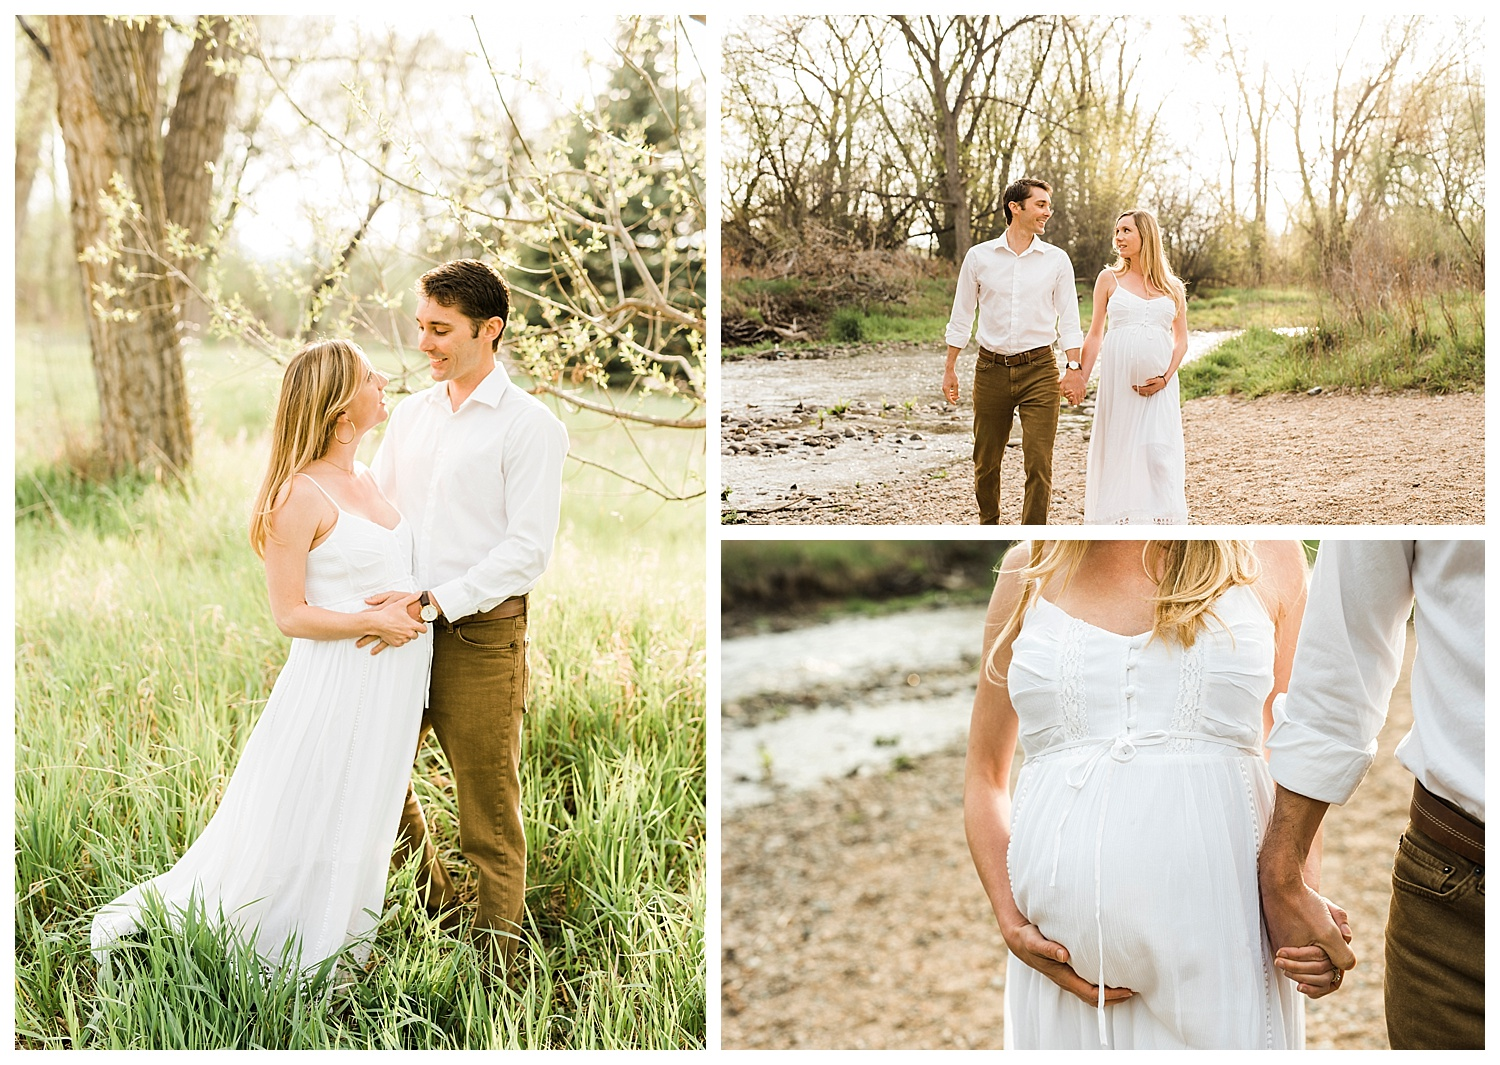 Linn_Maternity_Photos_Apollo_Fields_49.jpg